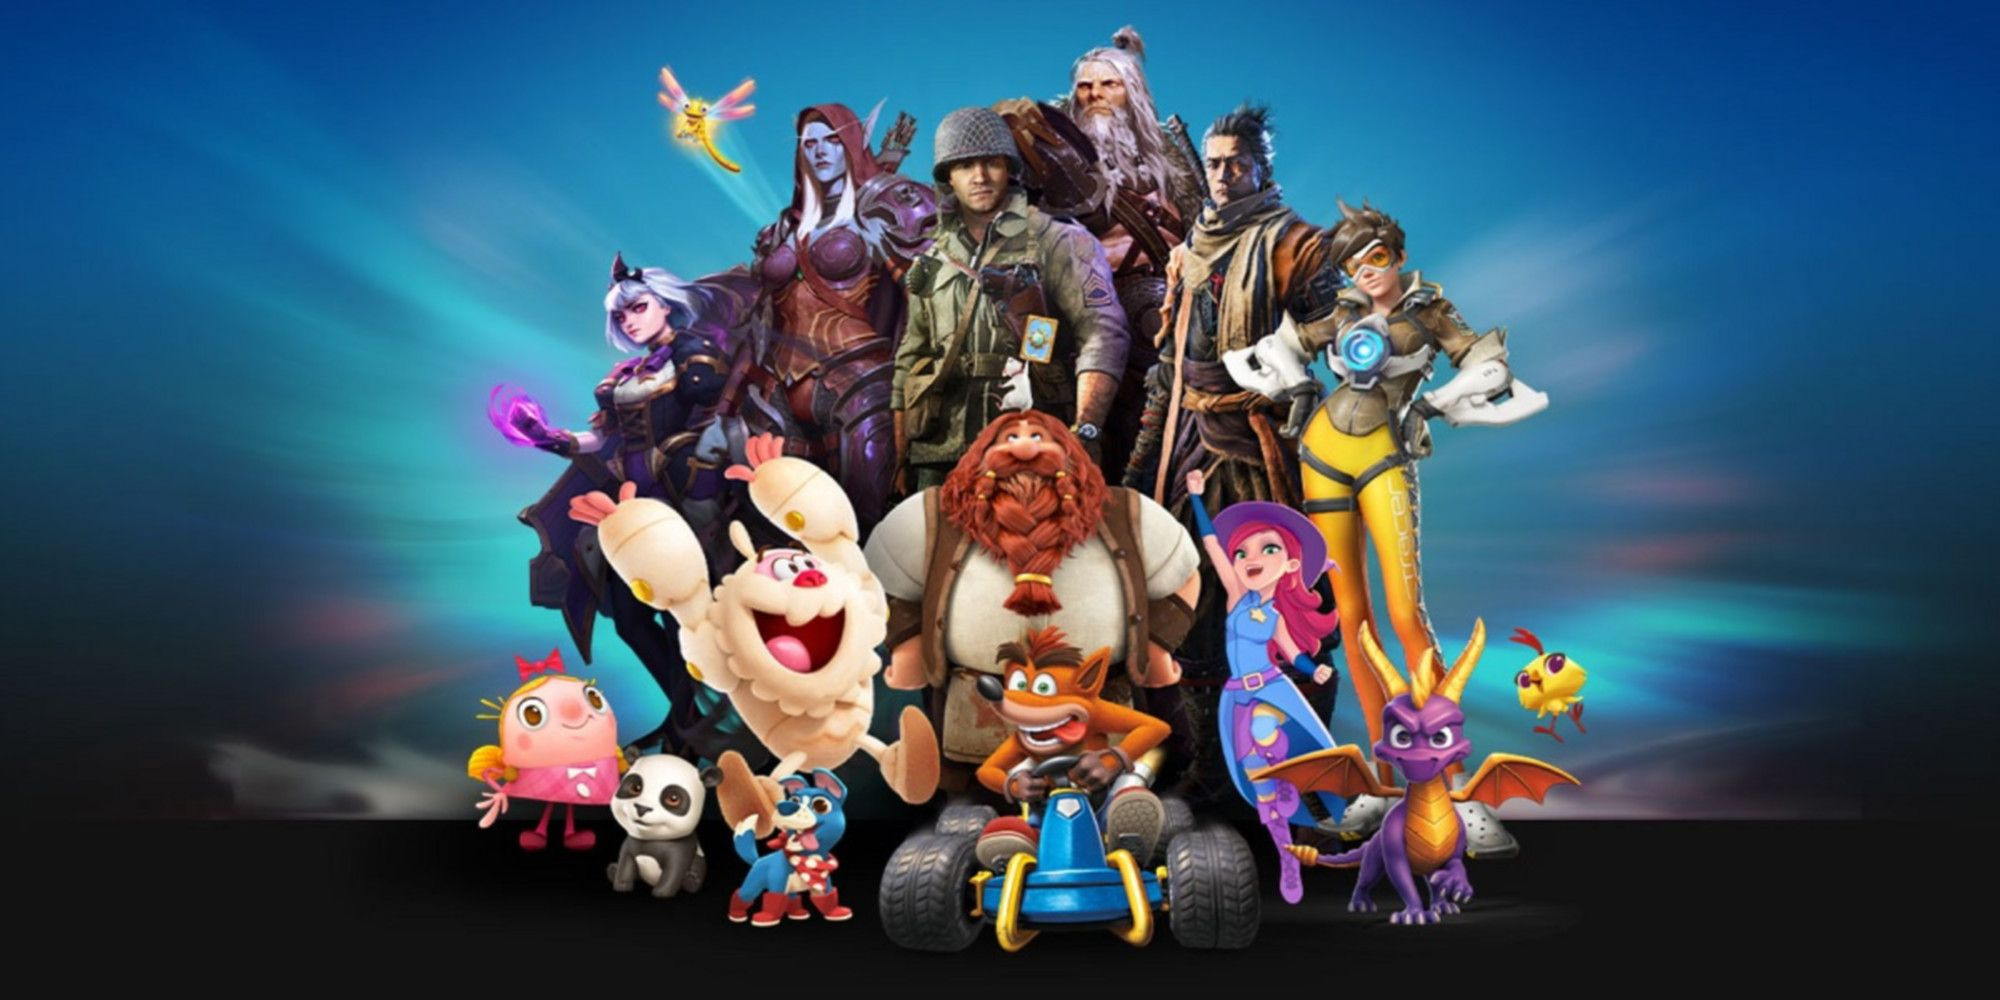 Activision Blizzard Accounts Have Gone Dark Following Allegations